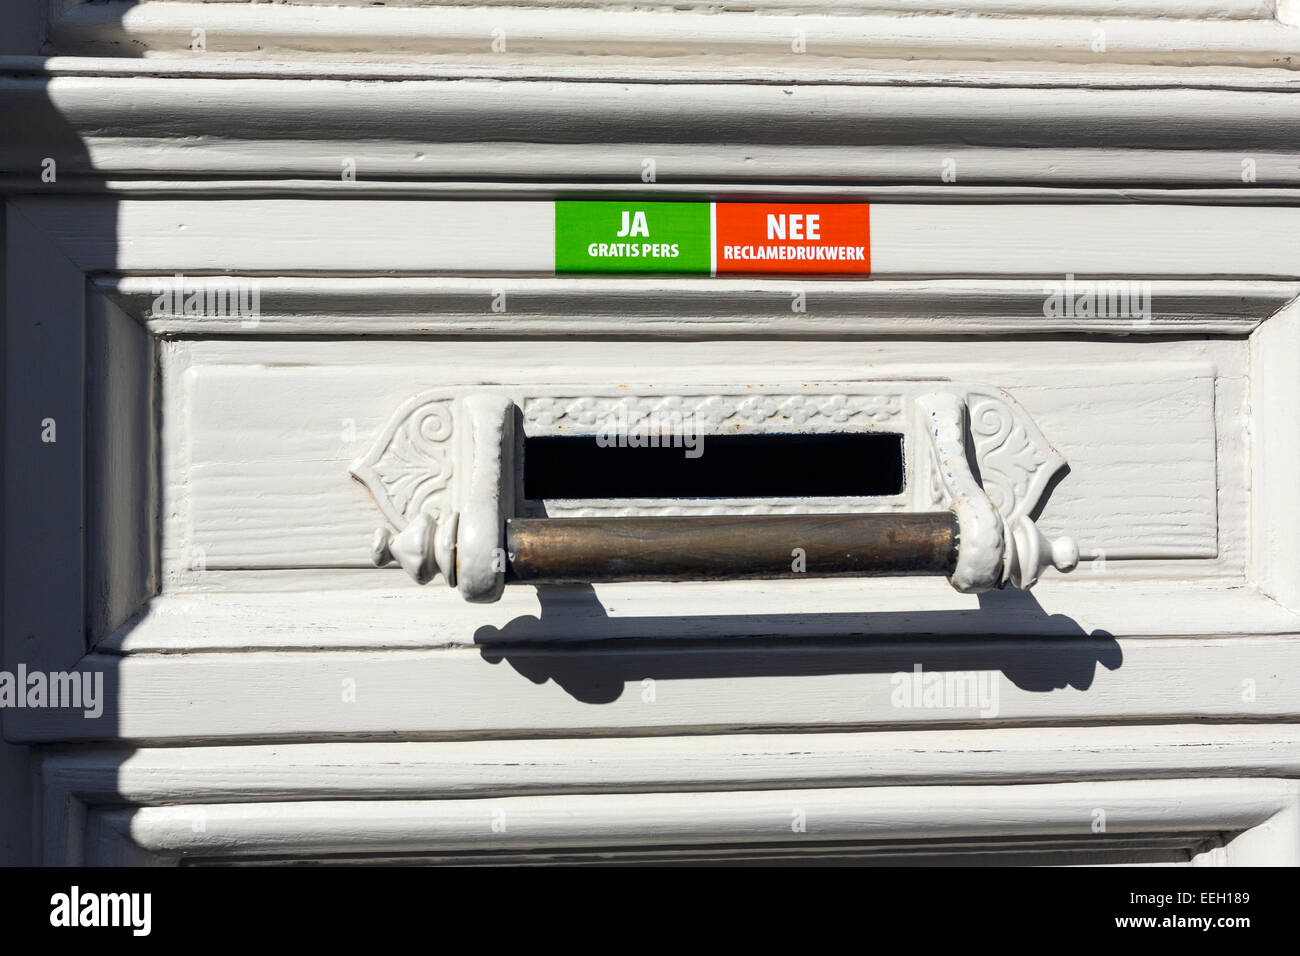 Mechelen mailbox with placard saying no advertisement and yes free magazines - Stock Image